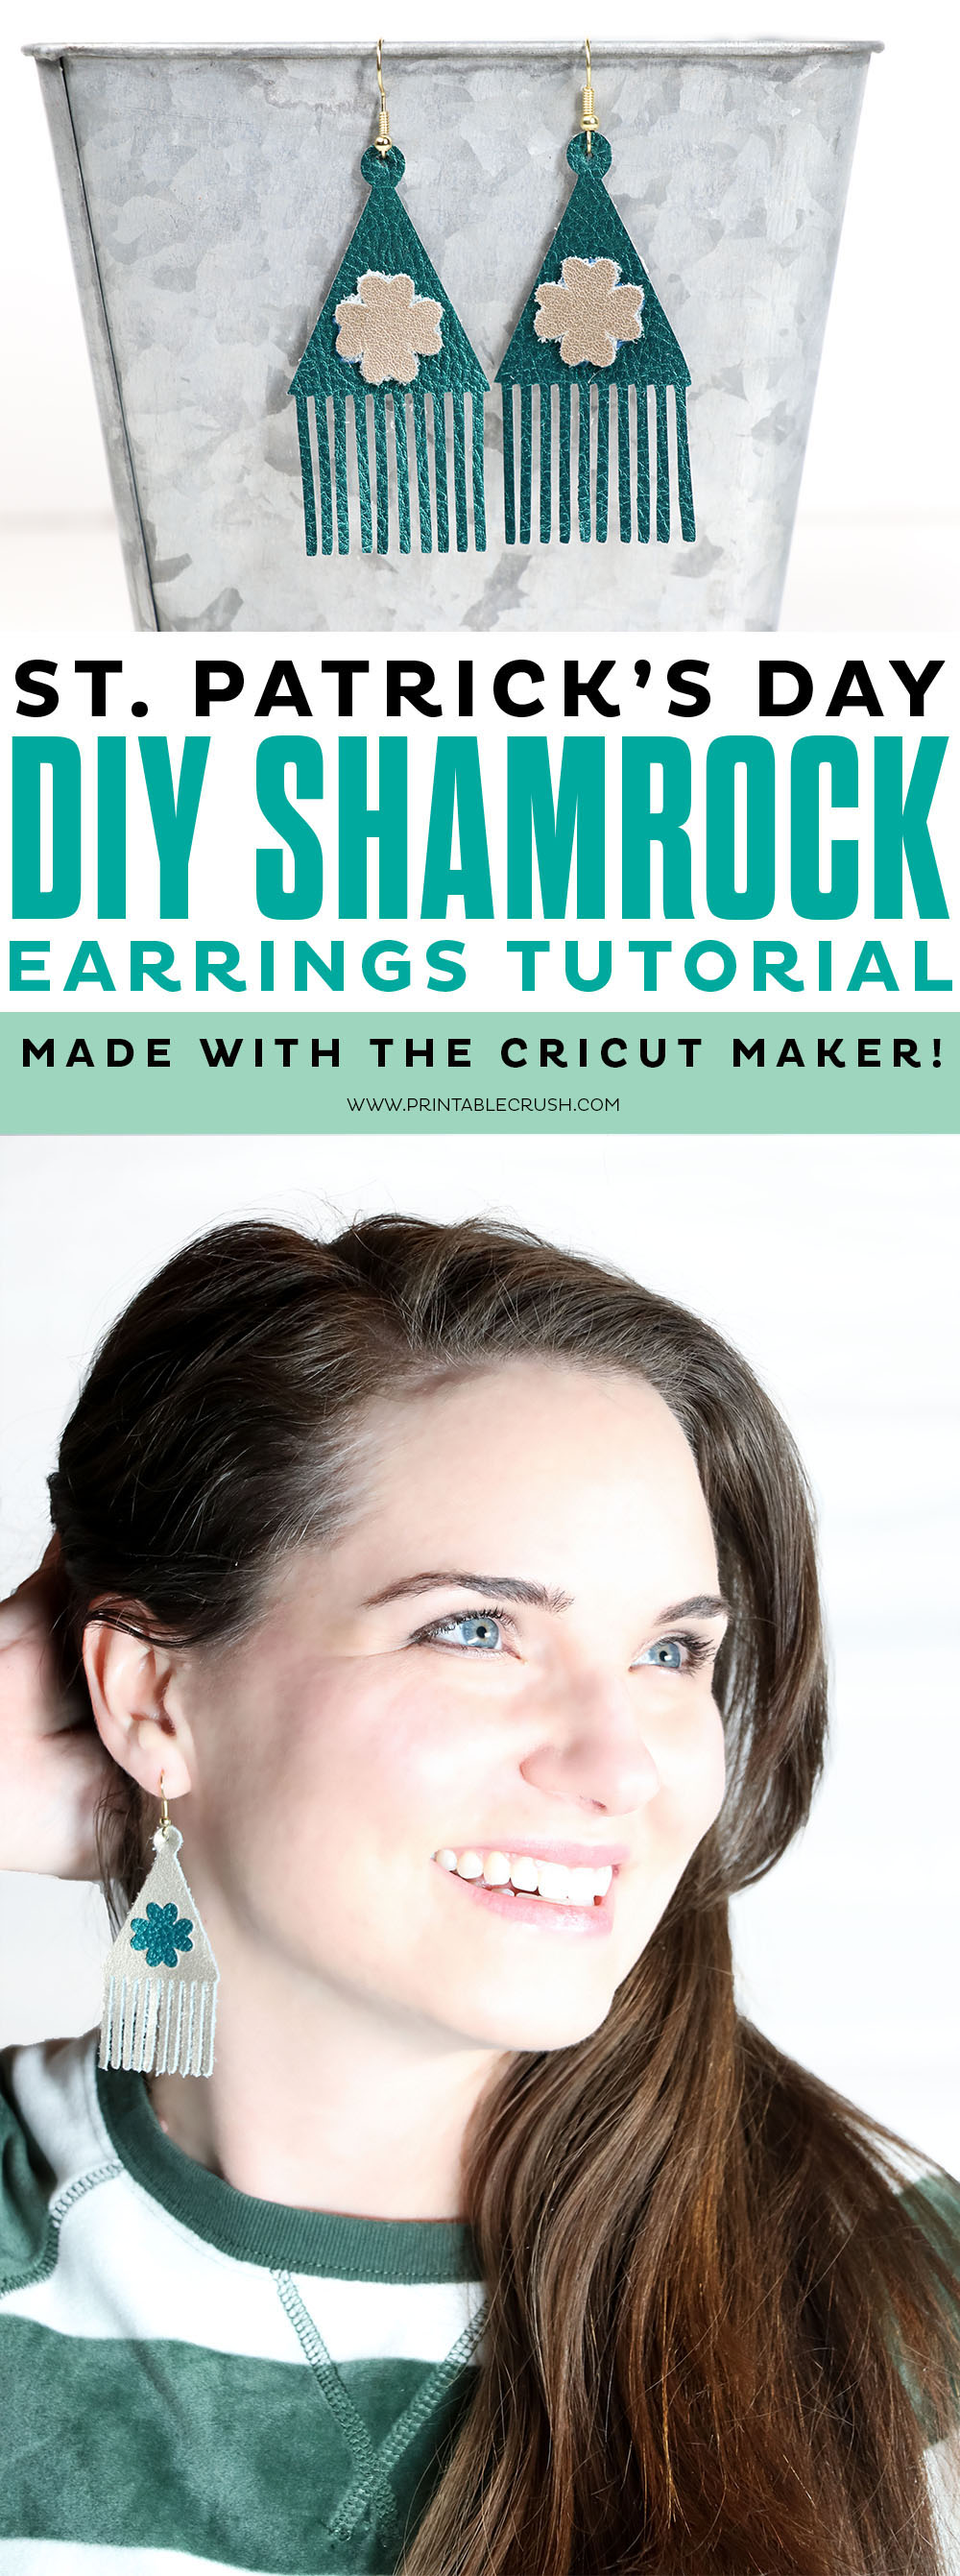 Create these pretty St. Patrick's Day Shamrock Earrings for with the Cricut Maker!